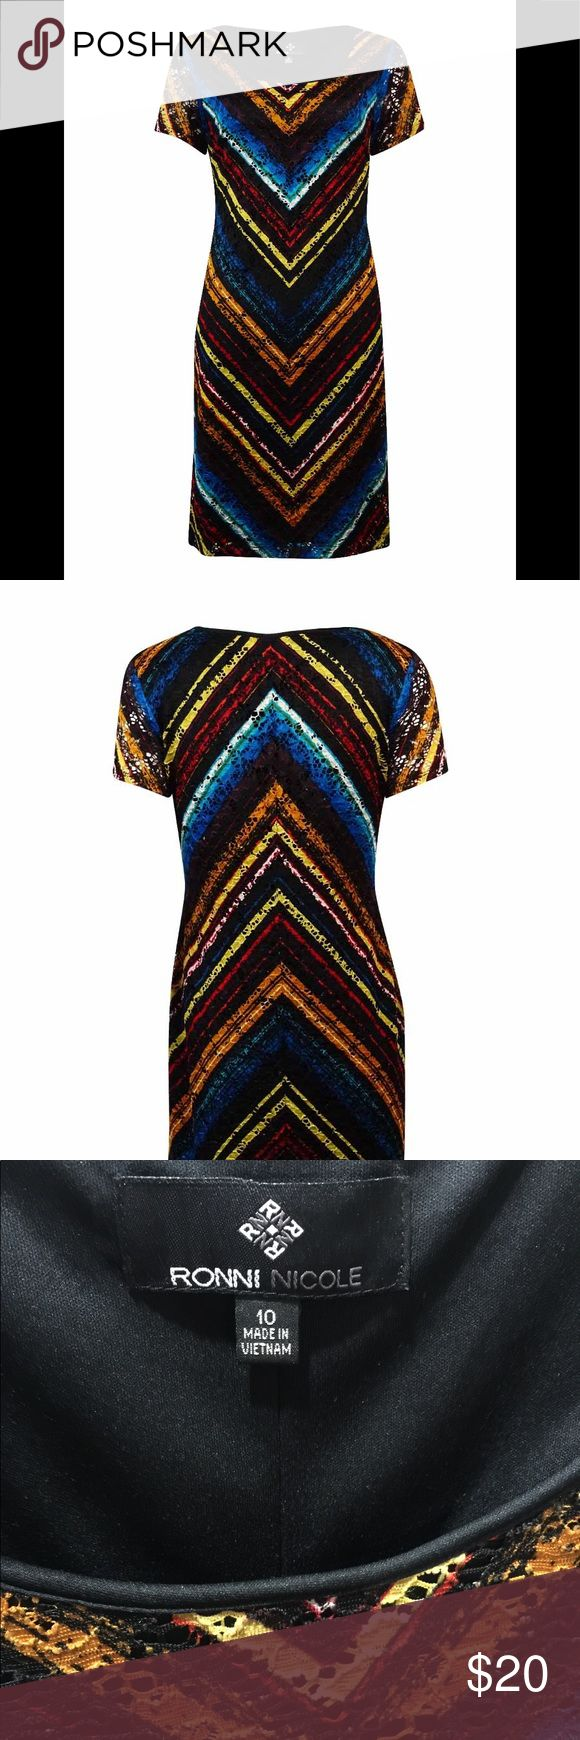 Ronni Nicole Chevron Print Lace Cap Sleeve Dress This pull over style printed chevron lace dress is from Roni Nicole. The multicolored printed lace includes red, blue, and yellow chevrons. This lovely dress is fully lined with a black lining adding modesty and function. has stretch, and is very comfortable. It travels well too; I wore it on a cruise. Pair it with sandals in summer and ankle booties and tights in winter. Looks great with turquoise jewelry too! Smoke-free, dog friendly home…